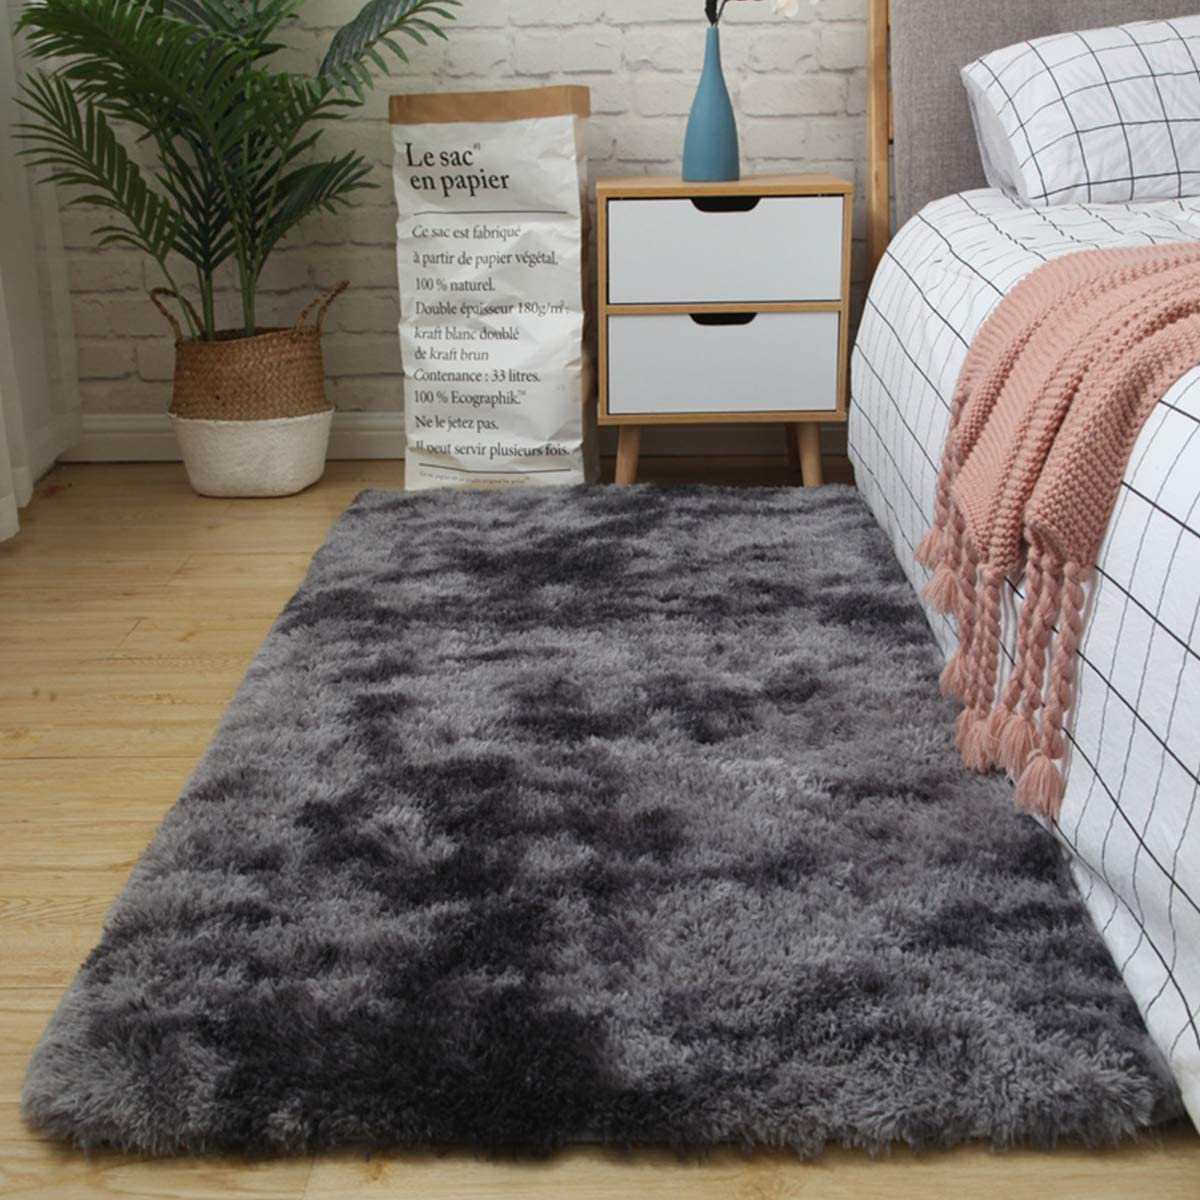 Area Rugs for Living Room, Bedroom, Modern Home Decorate Soft Fluffy Shaggy Indoor Carpet Christmas Thanksgiving Gift Girls Mat(4X6 Feet, Dark Grey)